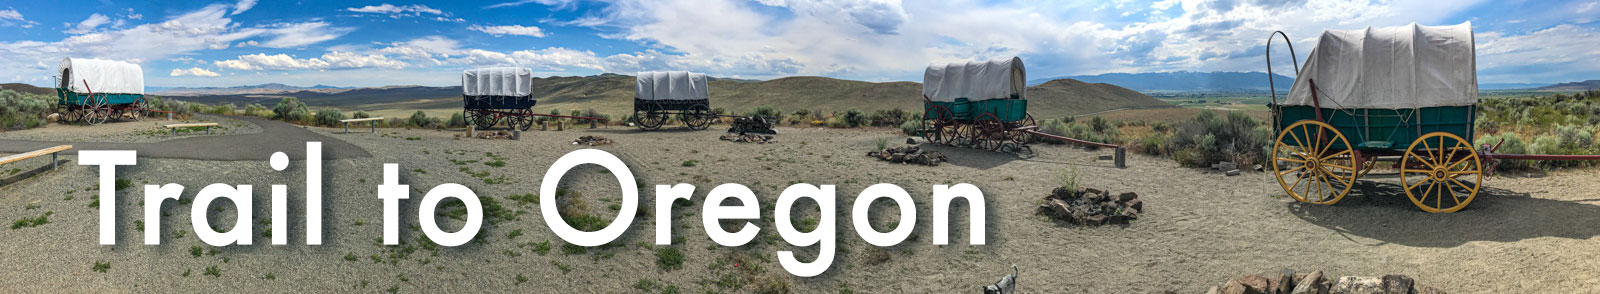 oregon-trail-HEADER.jpg